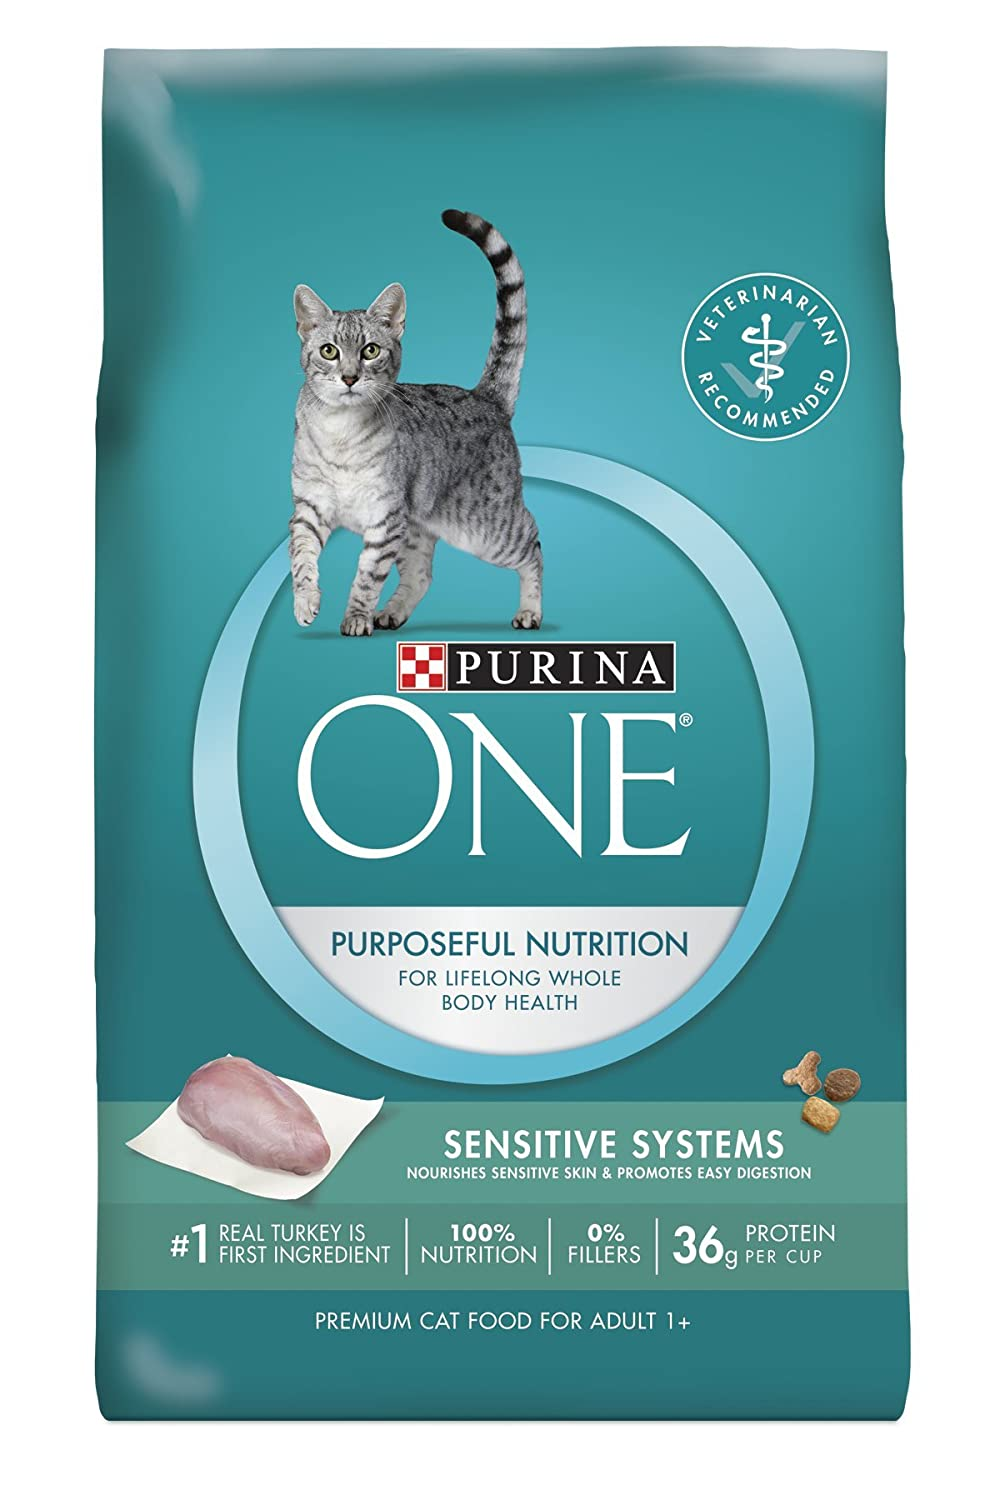 Purina ONE Sensitive Systems Adult Premium Cat Food